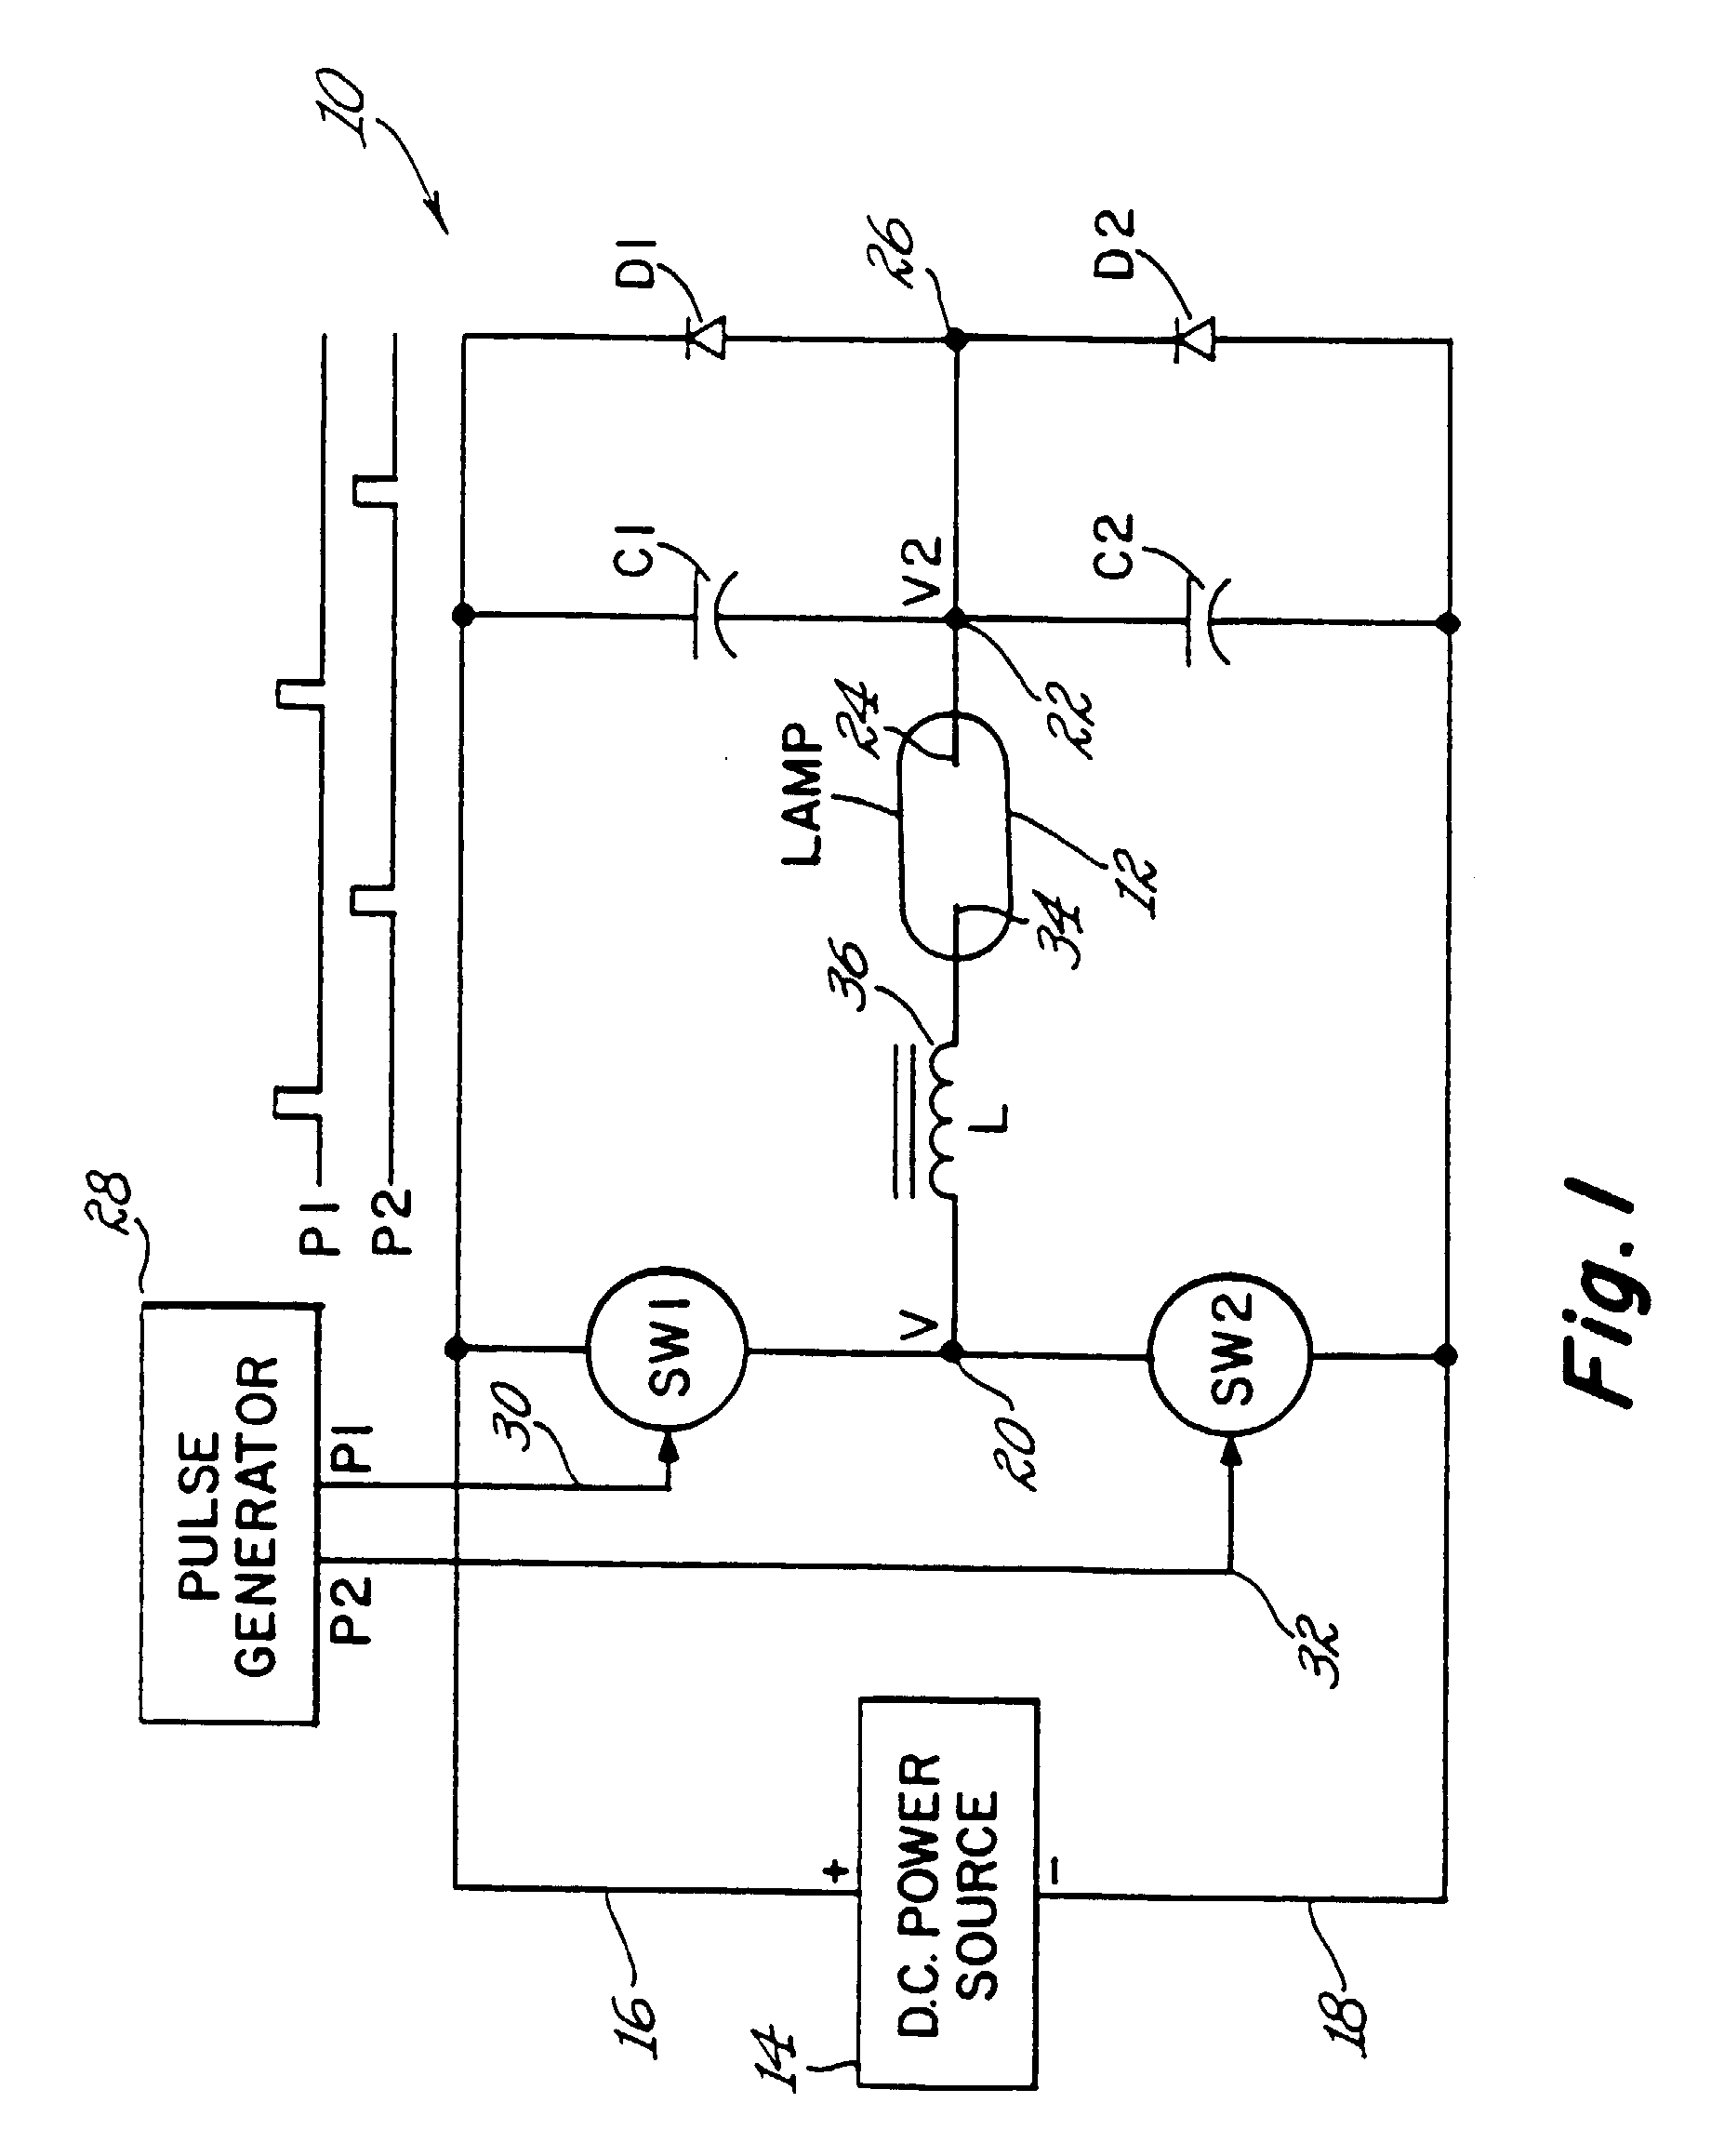 Wiring Diagram Of Sodium Vapour Lamp : Patent ep b circuit and method for operating high